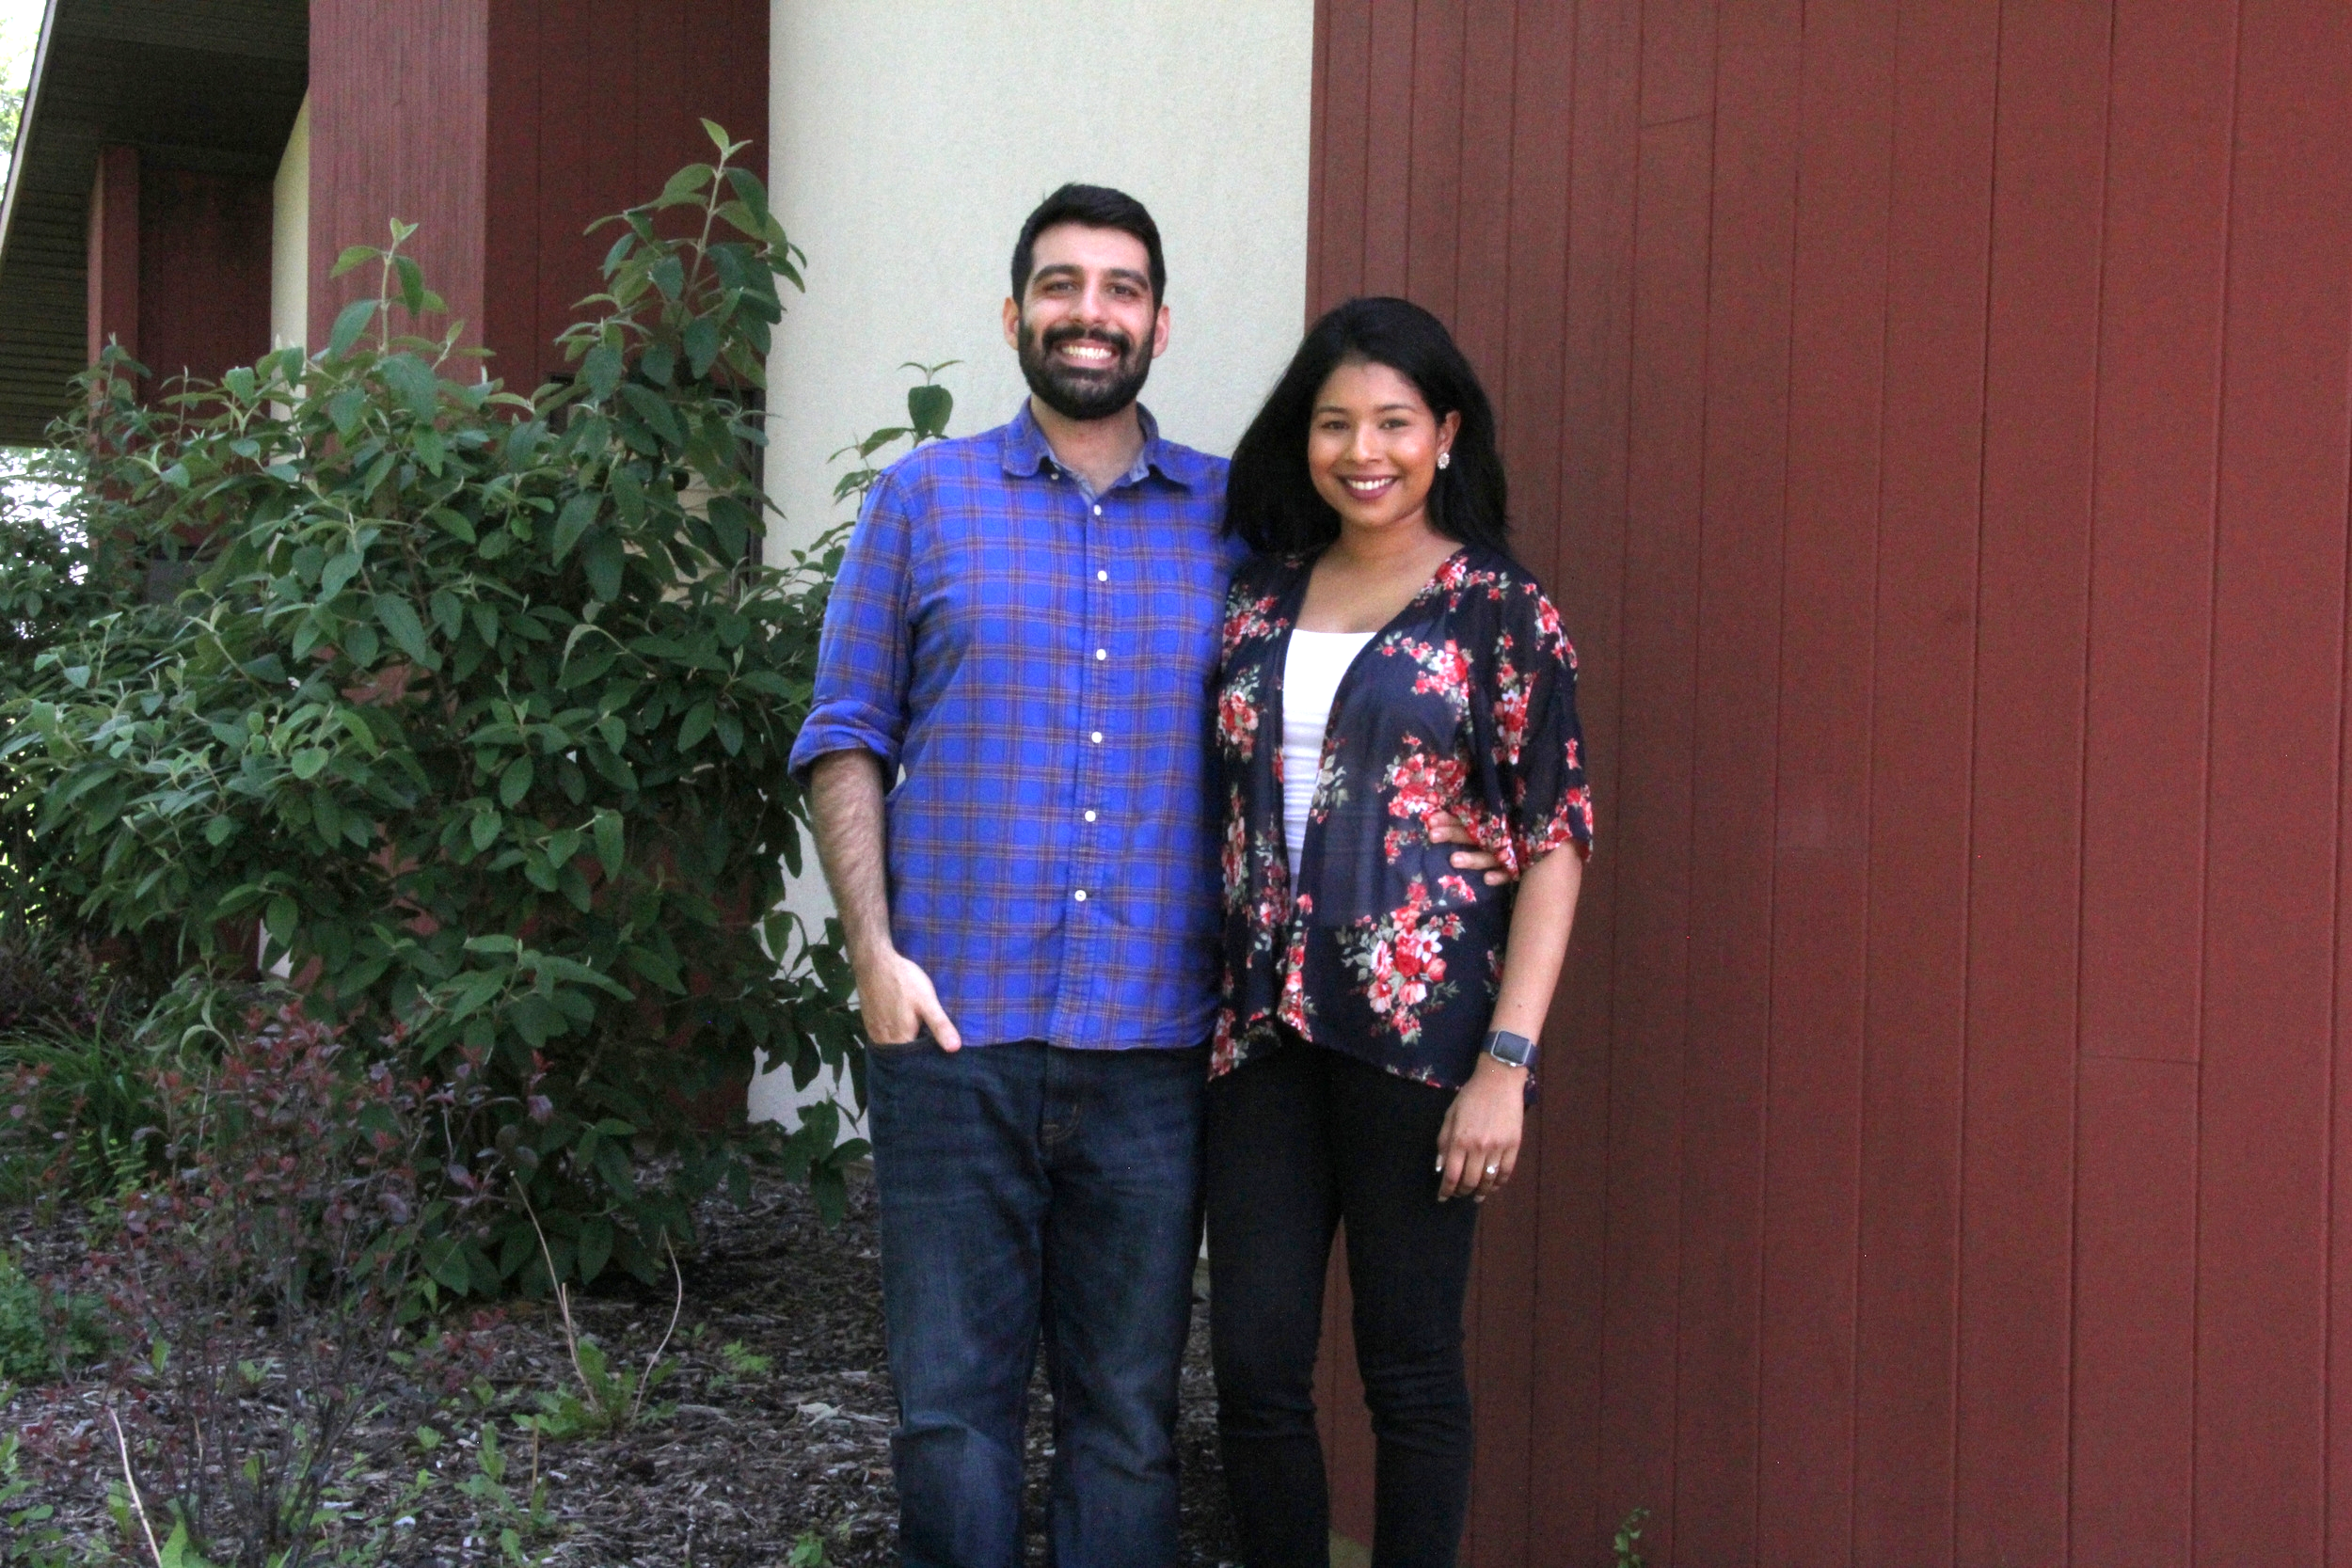 From left to right: Co-Founders Farzad Mesbahi and Cindy Moonsammy